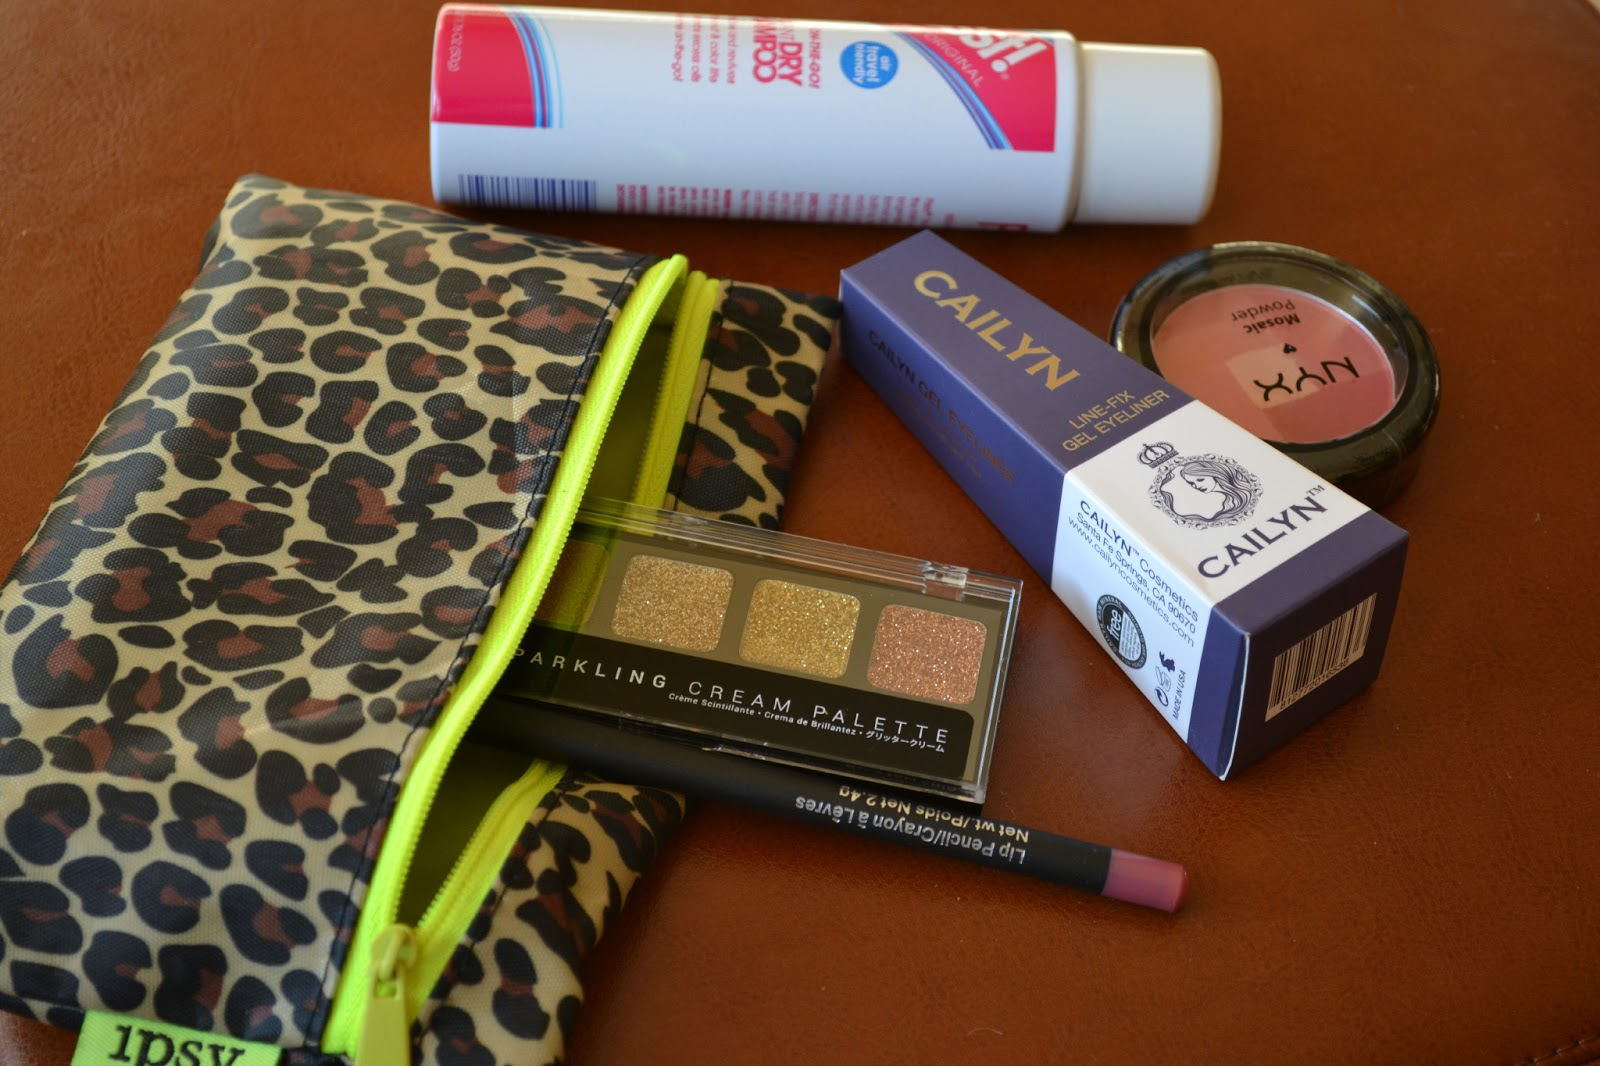 IPSY GLAMBAG JUNE 2013